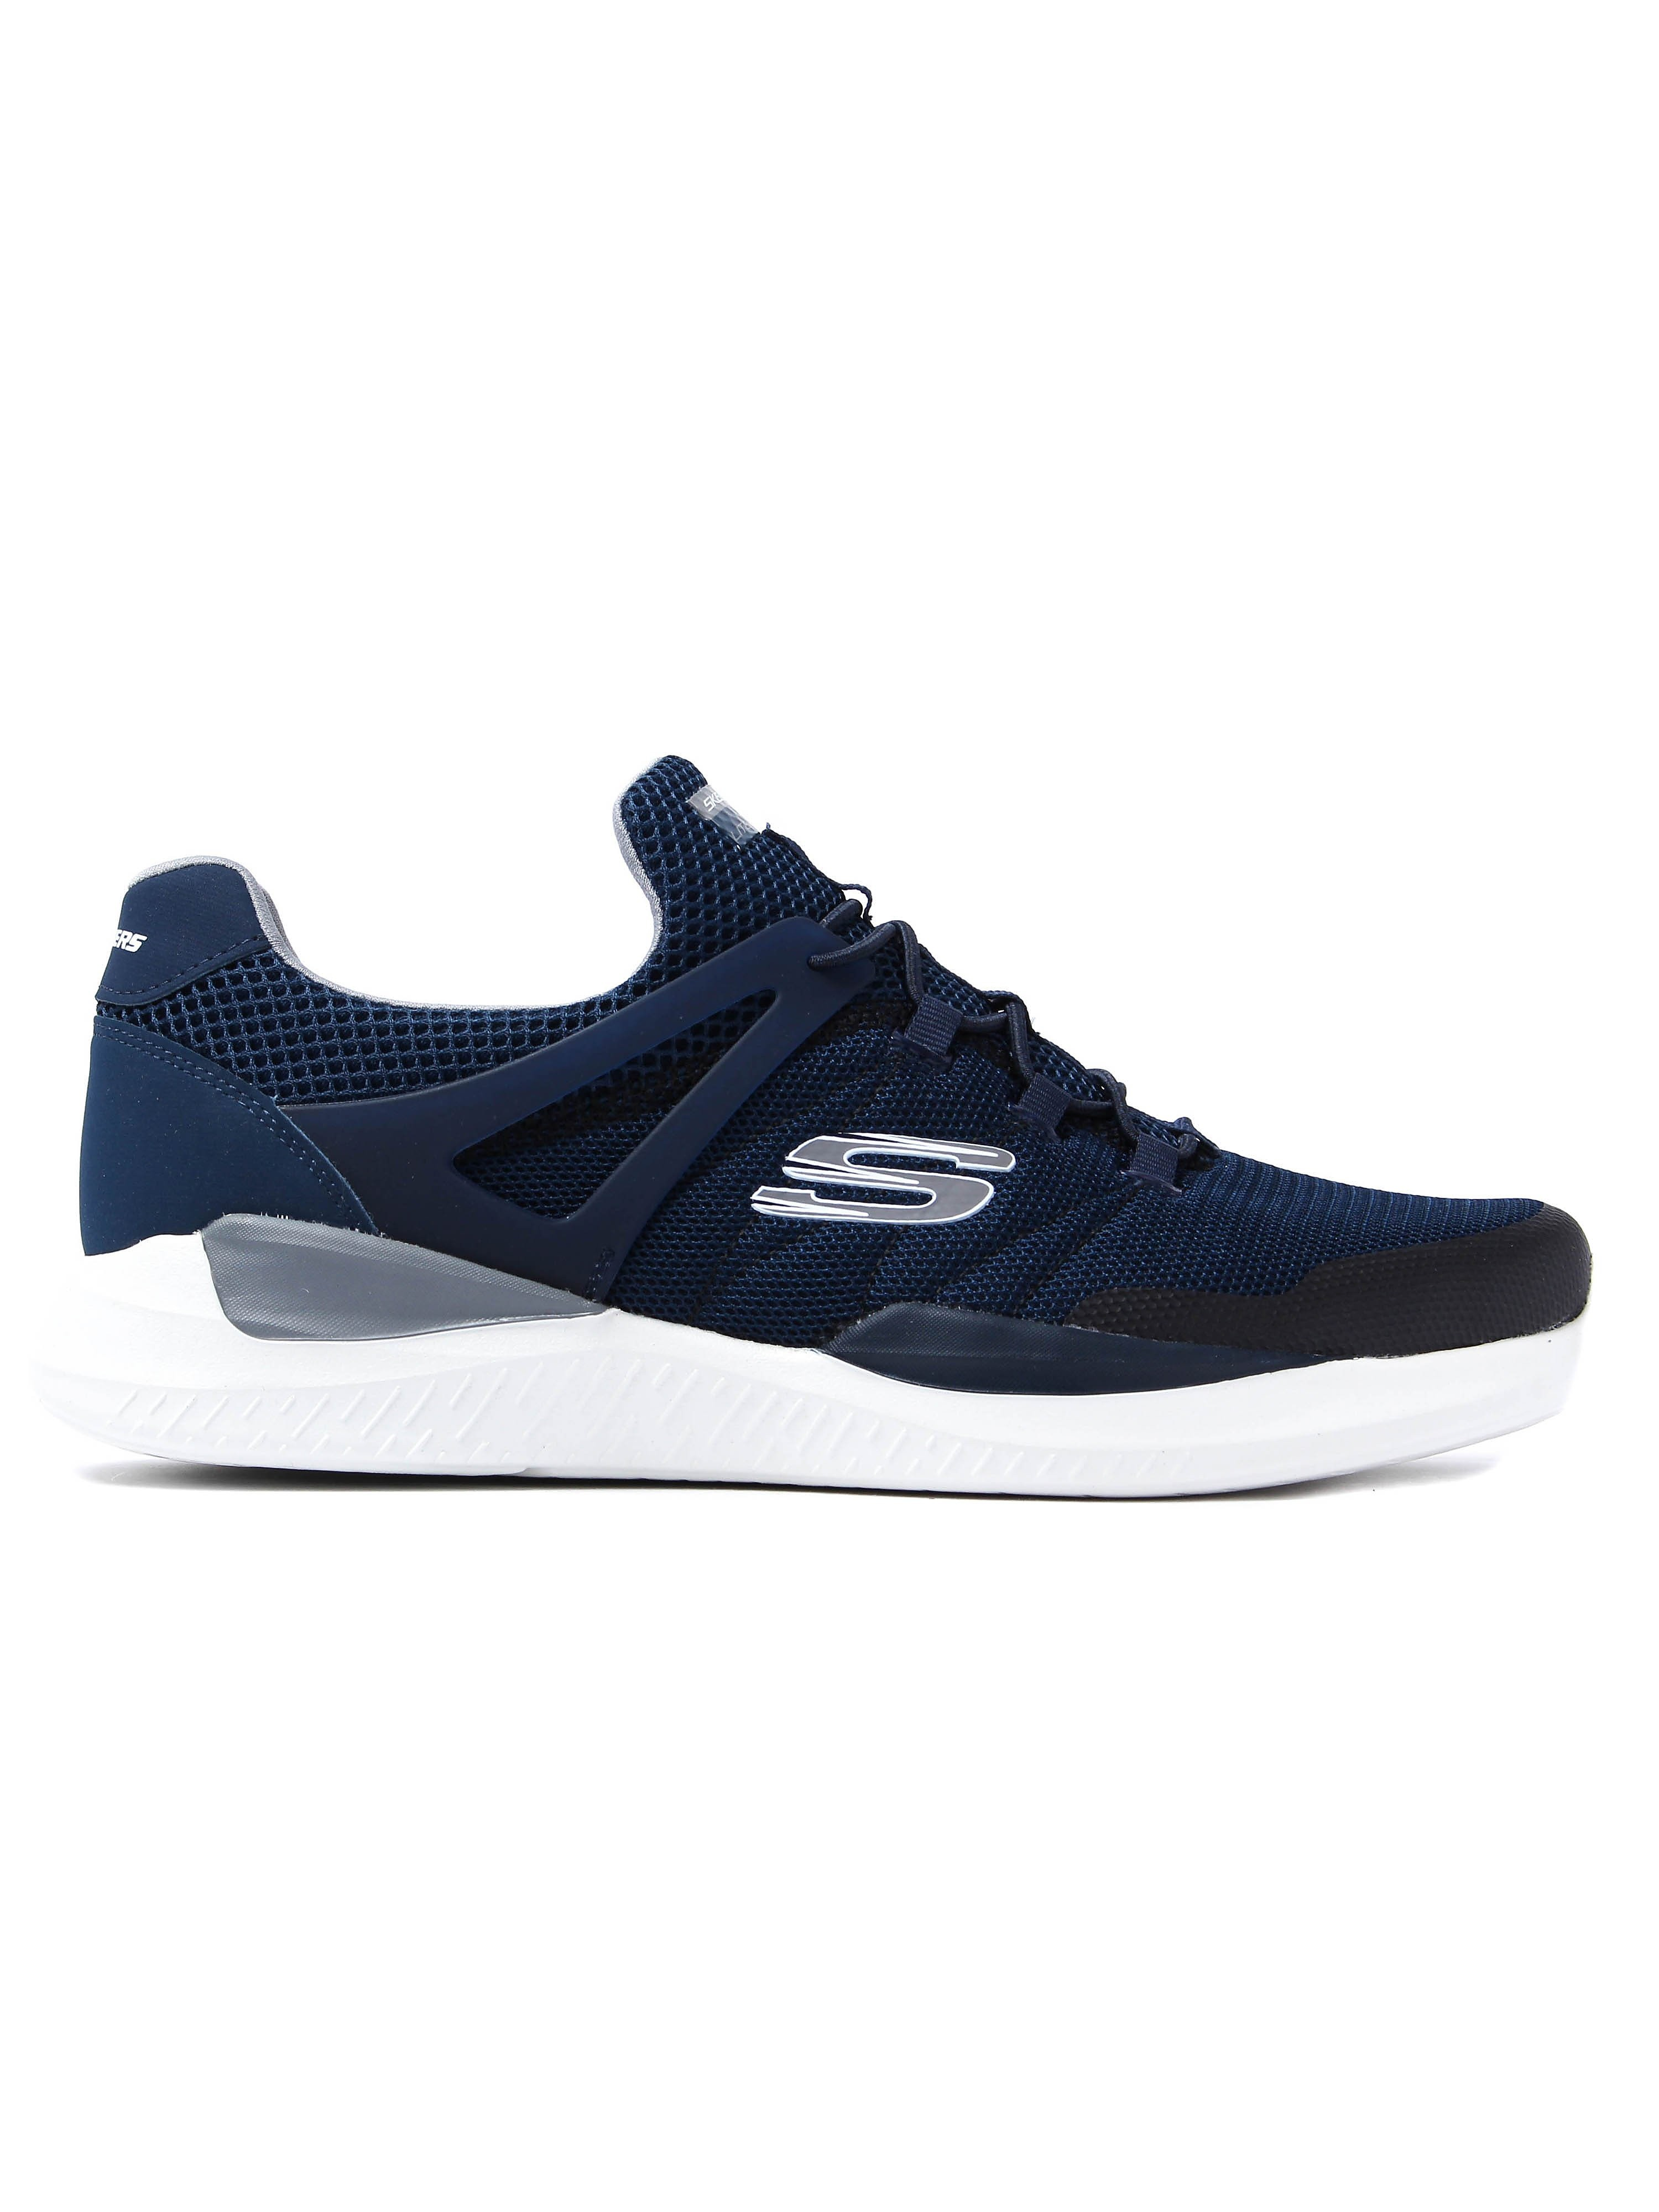 Skechers Men's Matrixx Kingdom Trainers – Navy